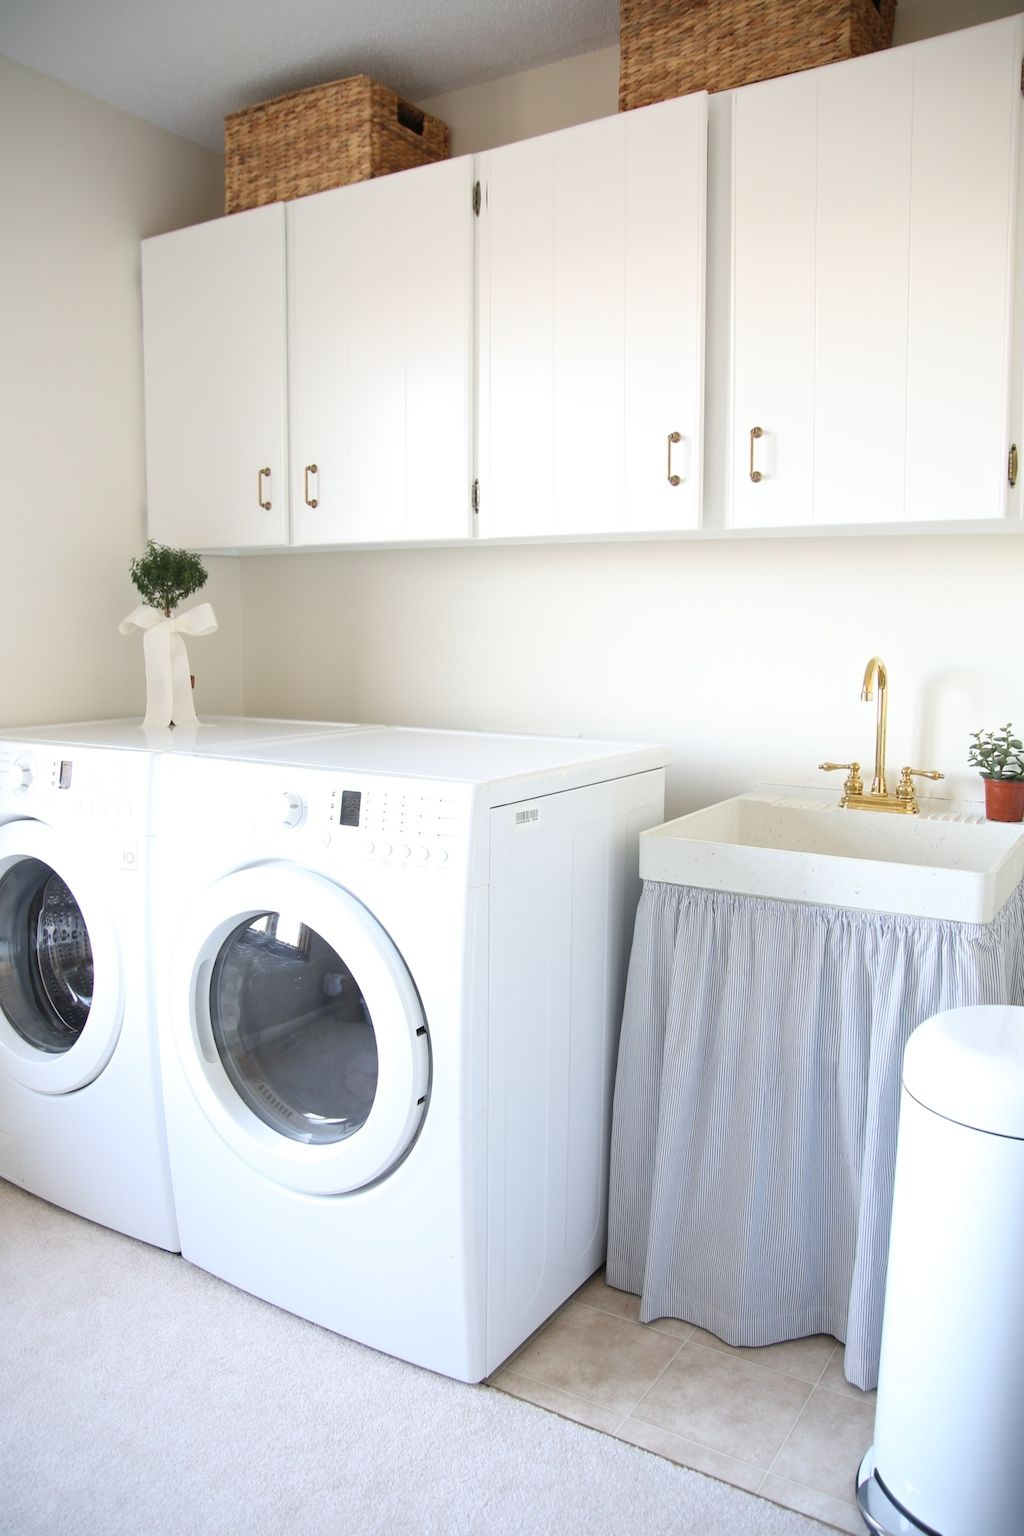 Simple & stylish laundry room ideas that add function & storage ...